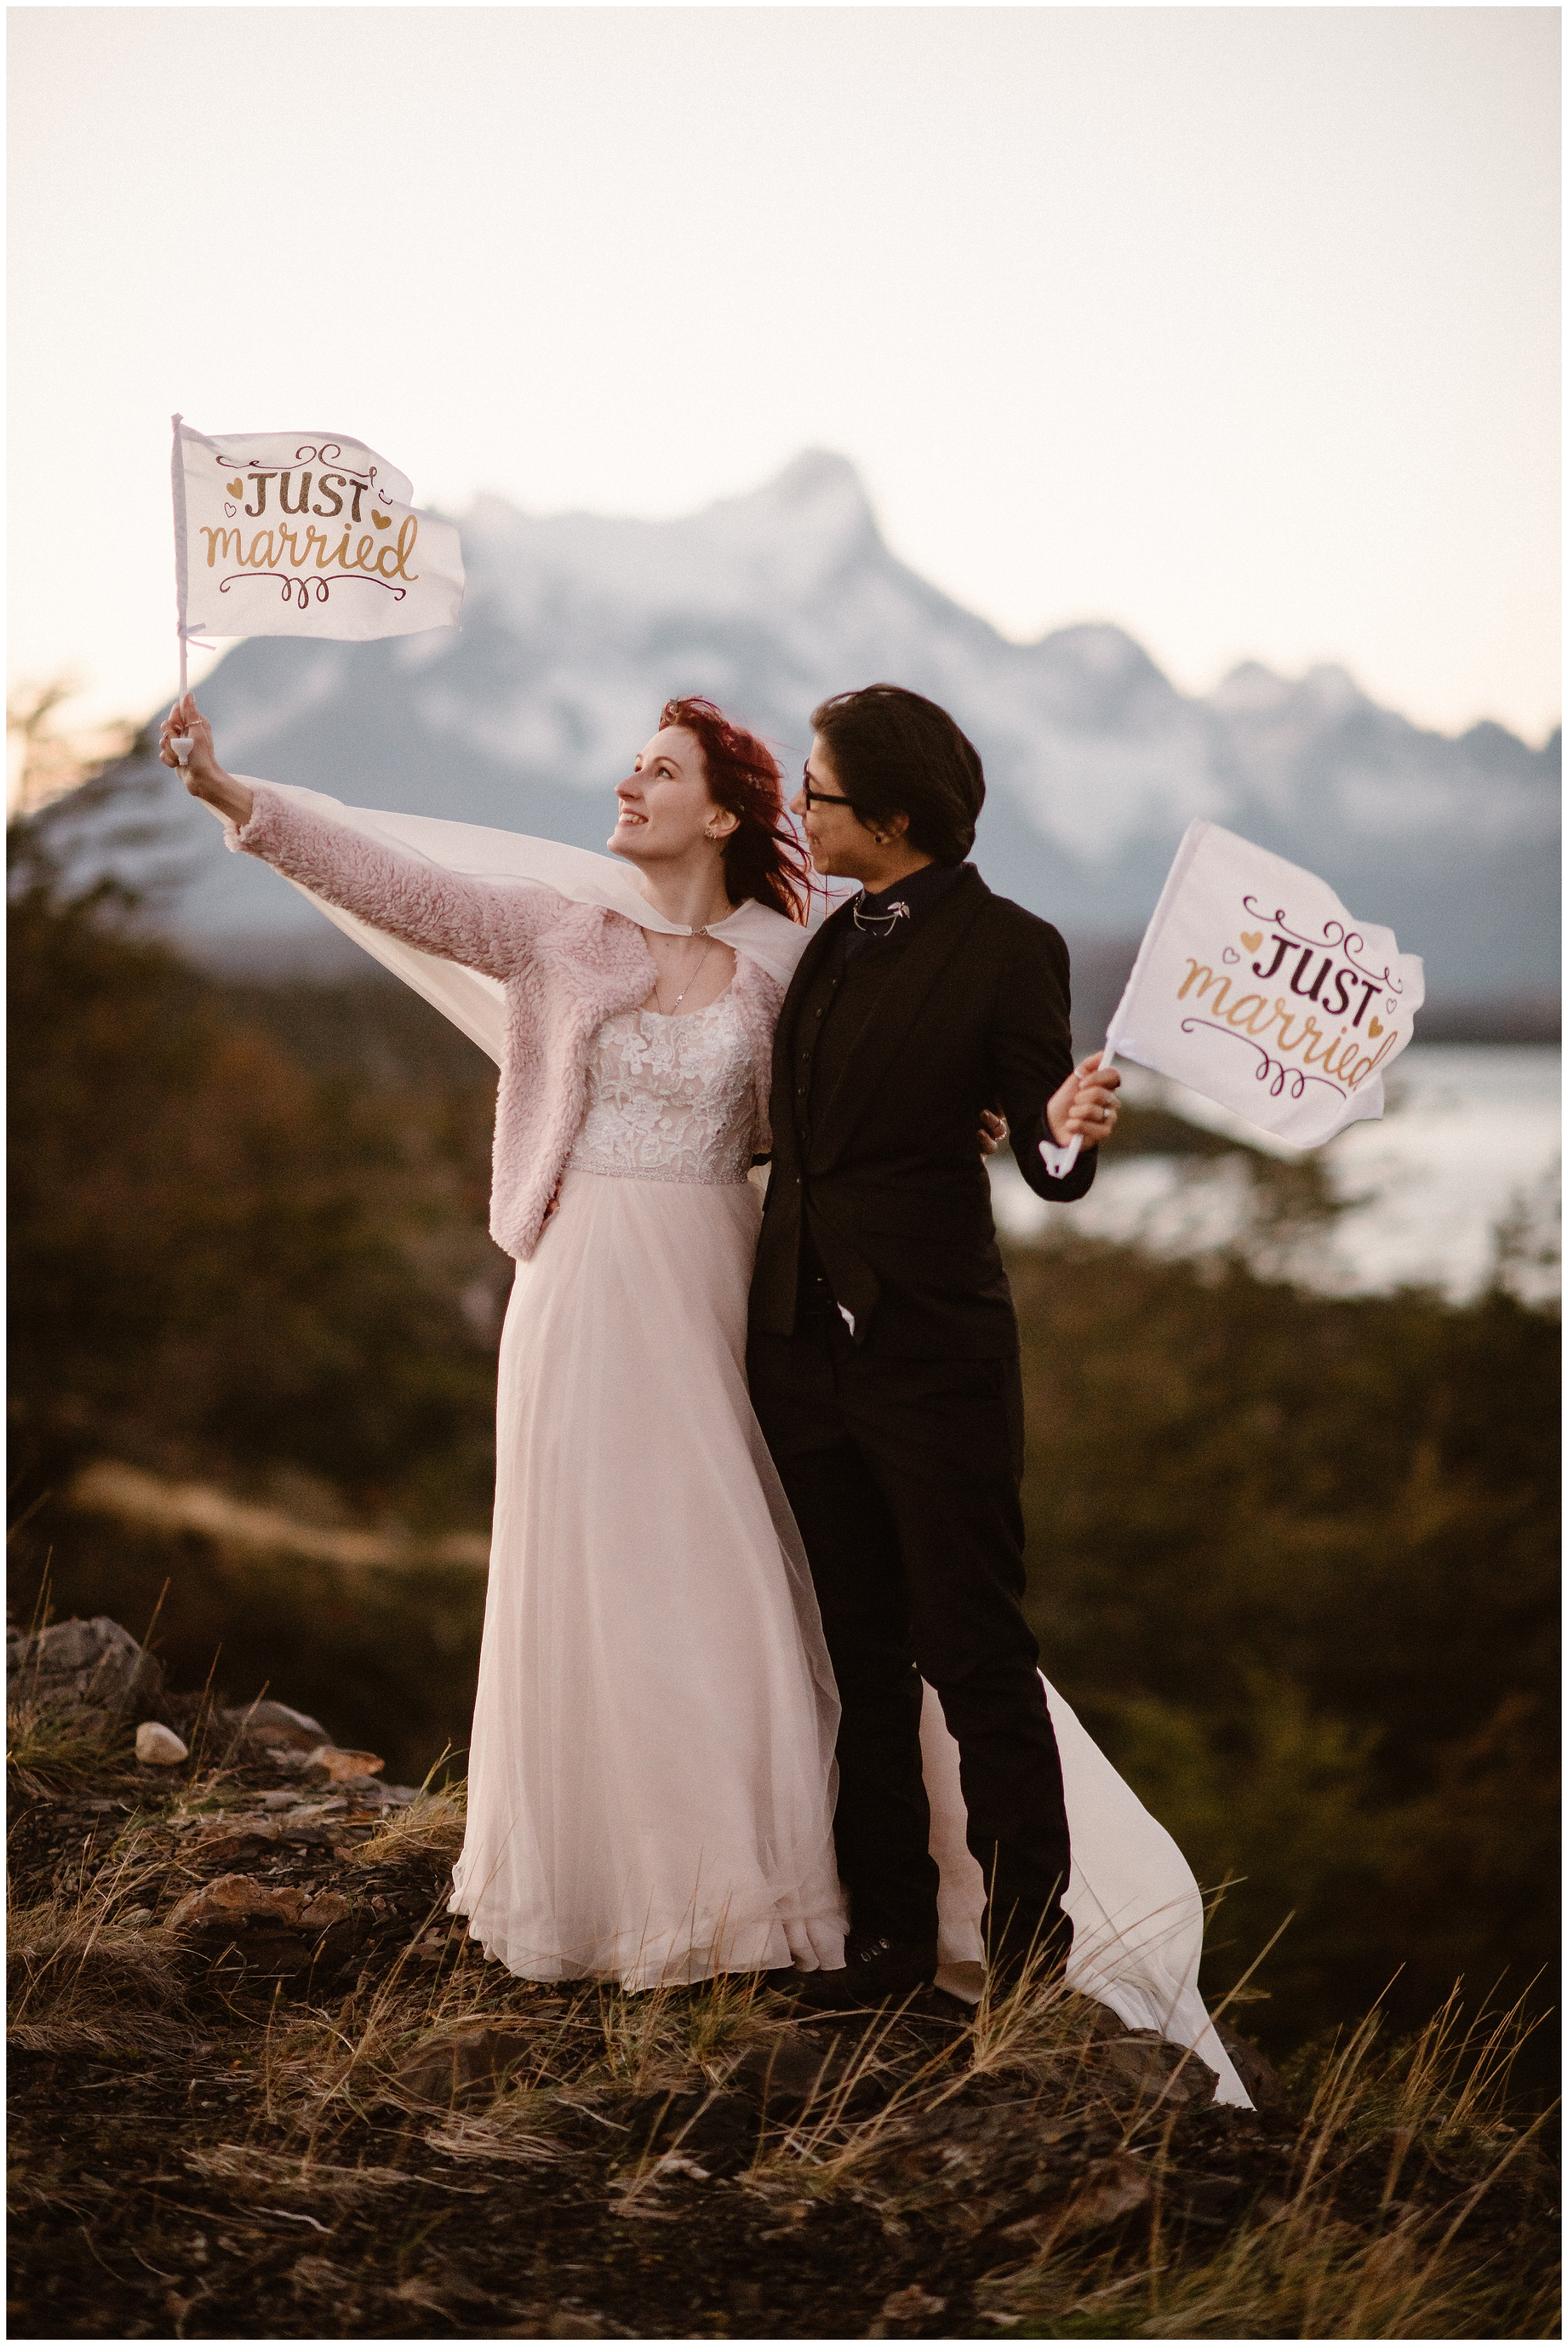 """Two young brides hold each other close as they fly two """"just married"""" flags during their Patagonia elopement ceremony. These adventure elopement photographs were captured by Adventure Instead, an elopement photographer."""